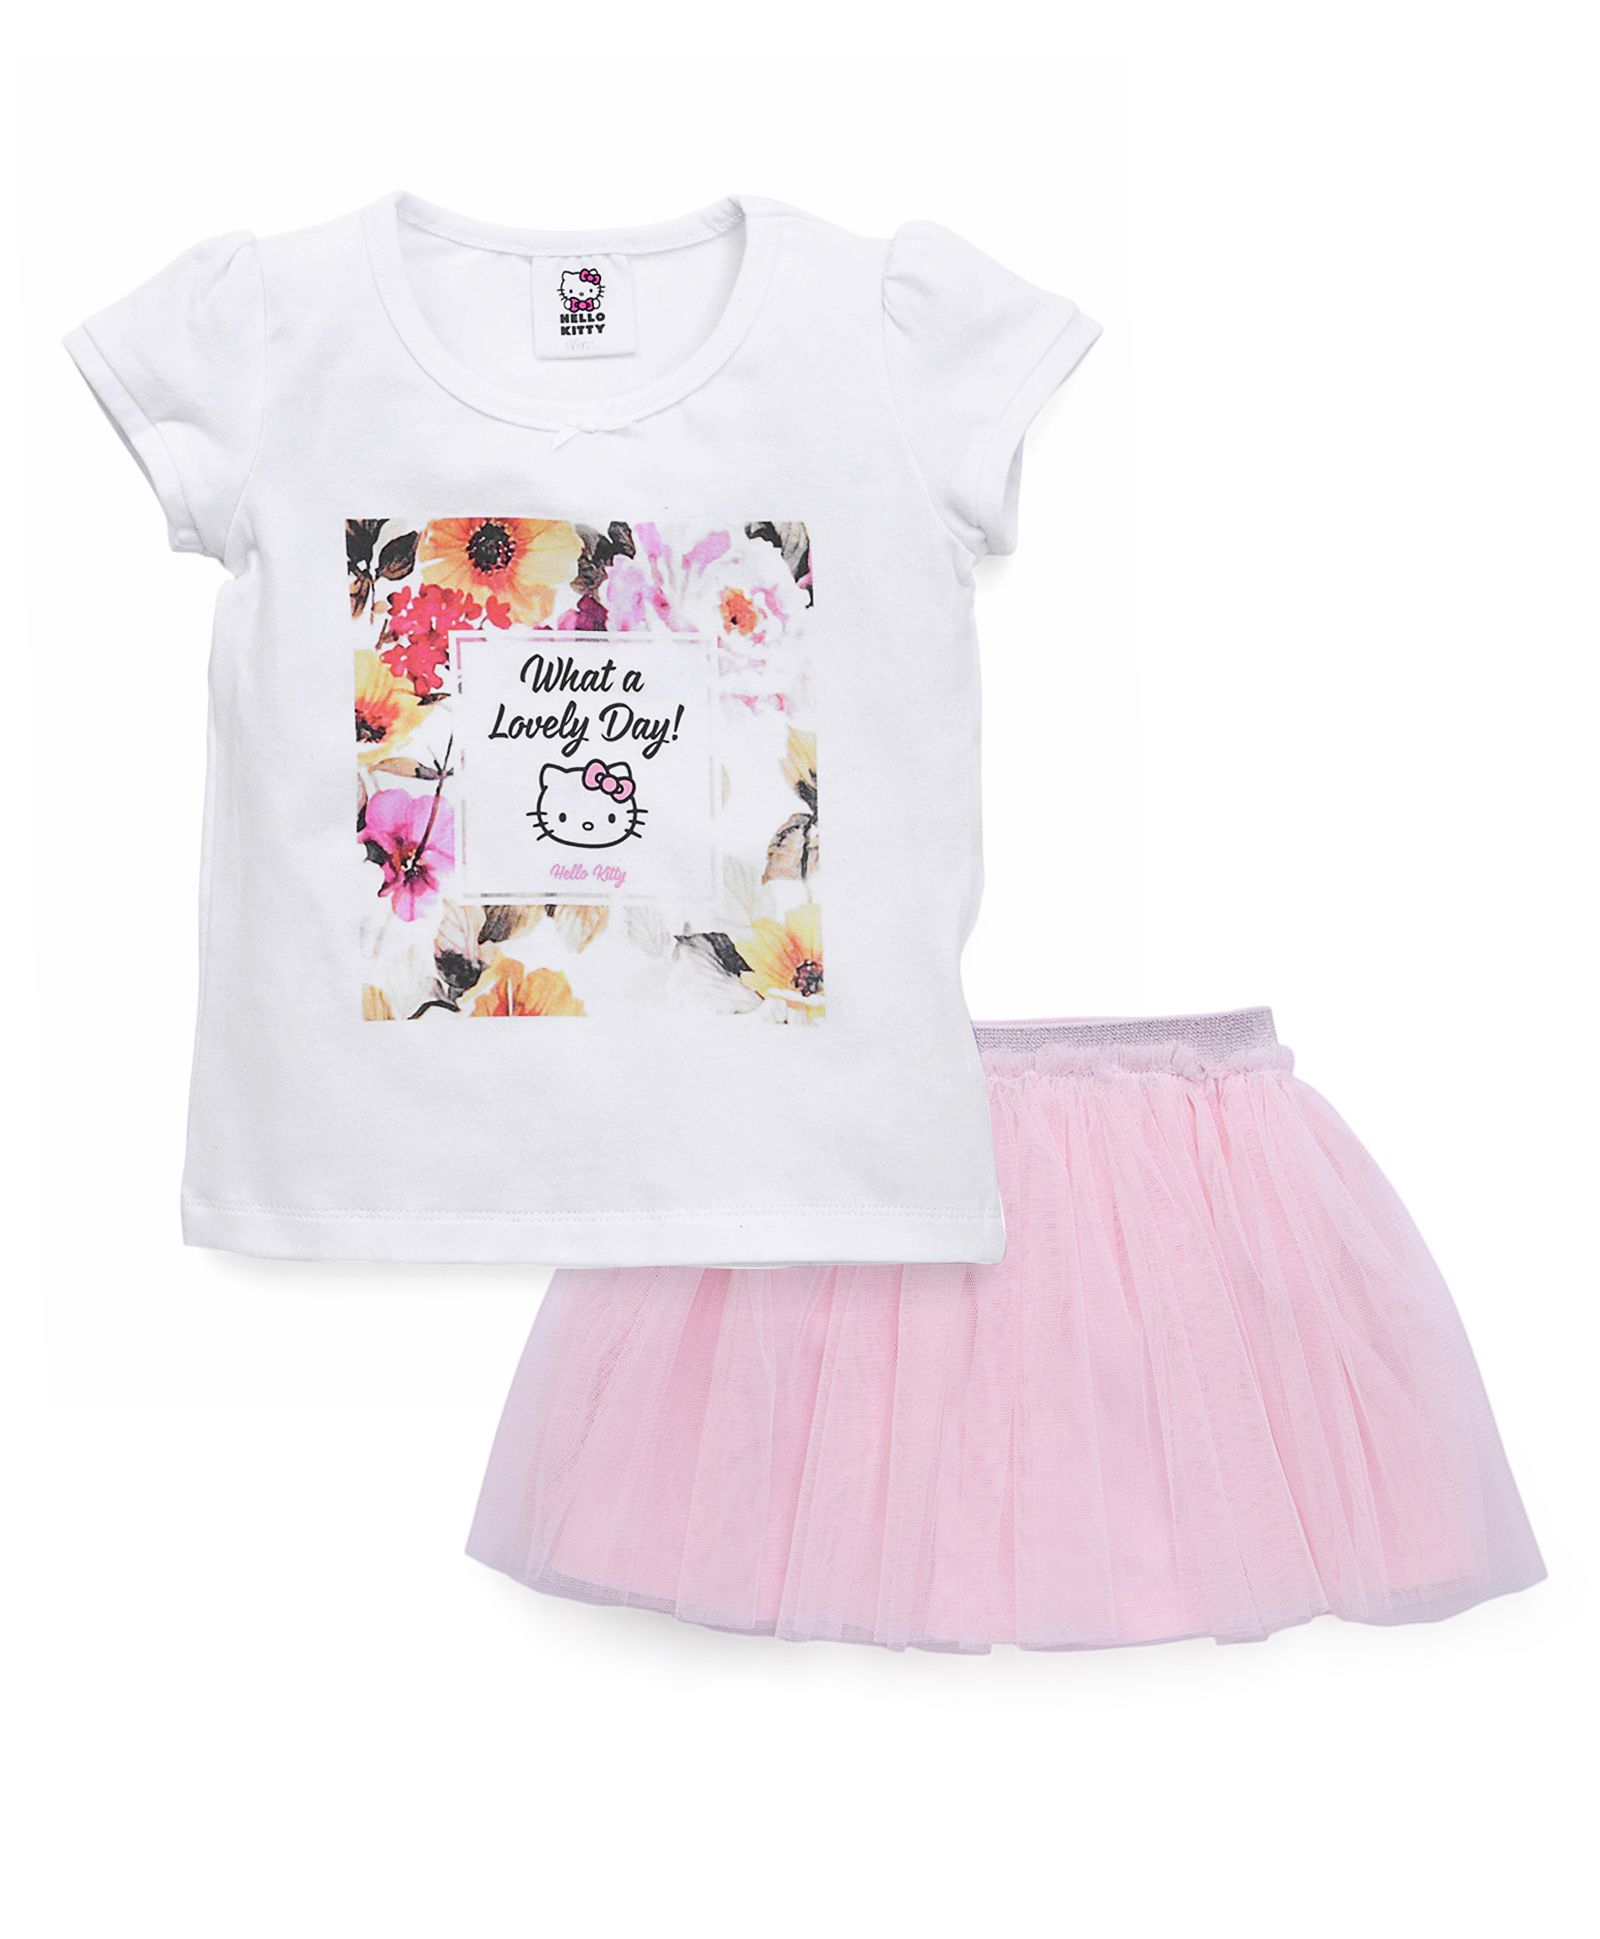 ba6d5ca8a Fox Baby Short Sleeves Top And Skirt Set Hello Kitty Print - White & Pink